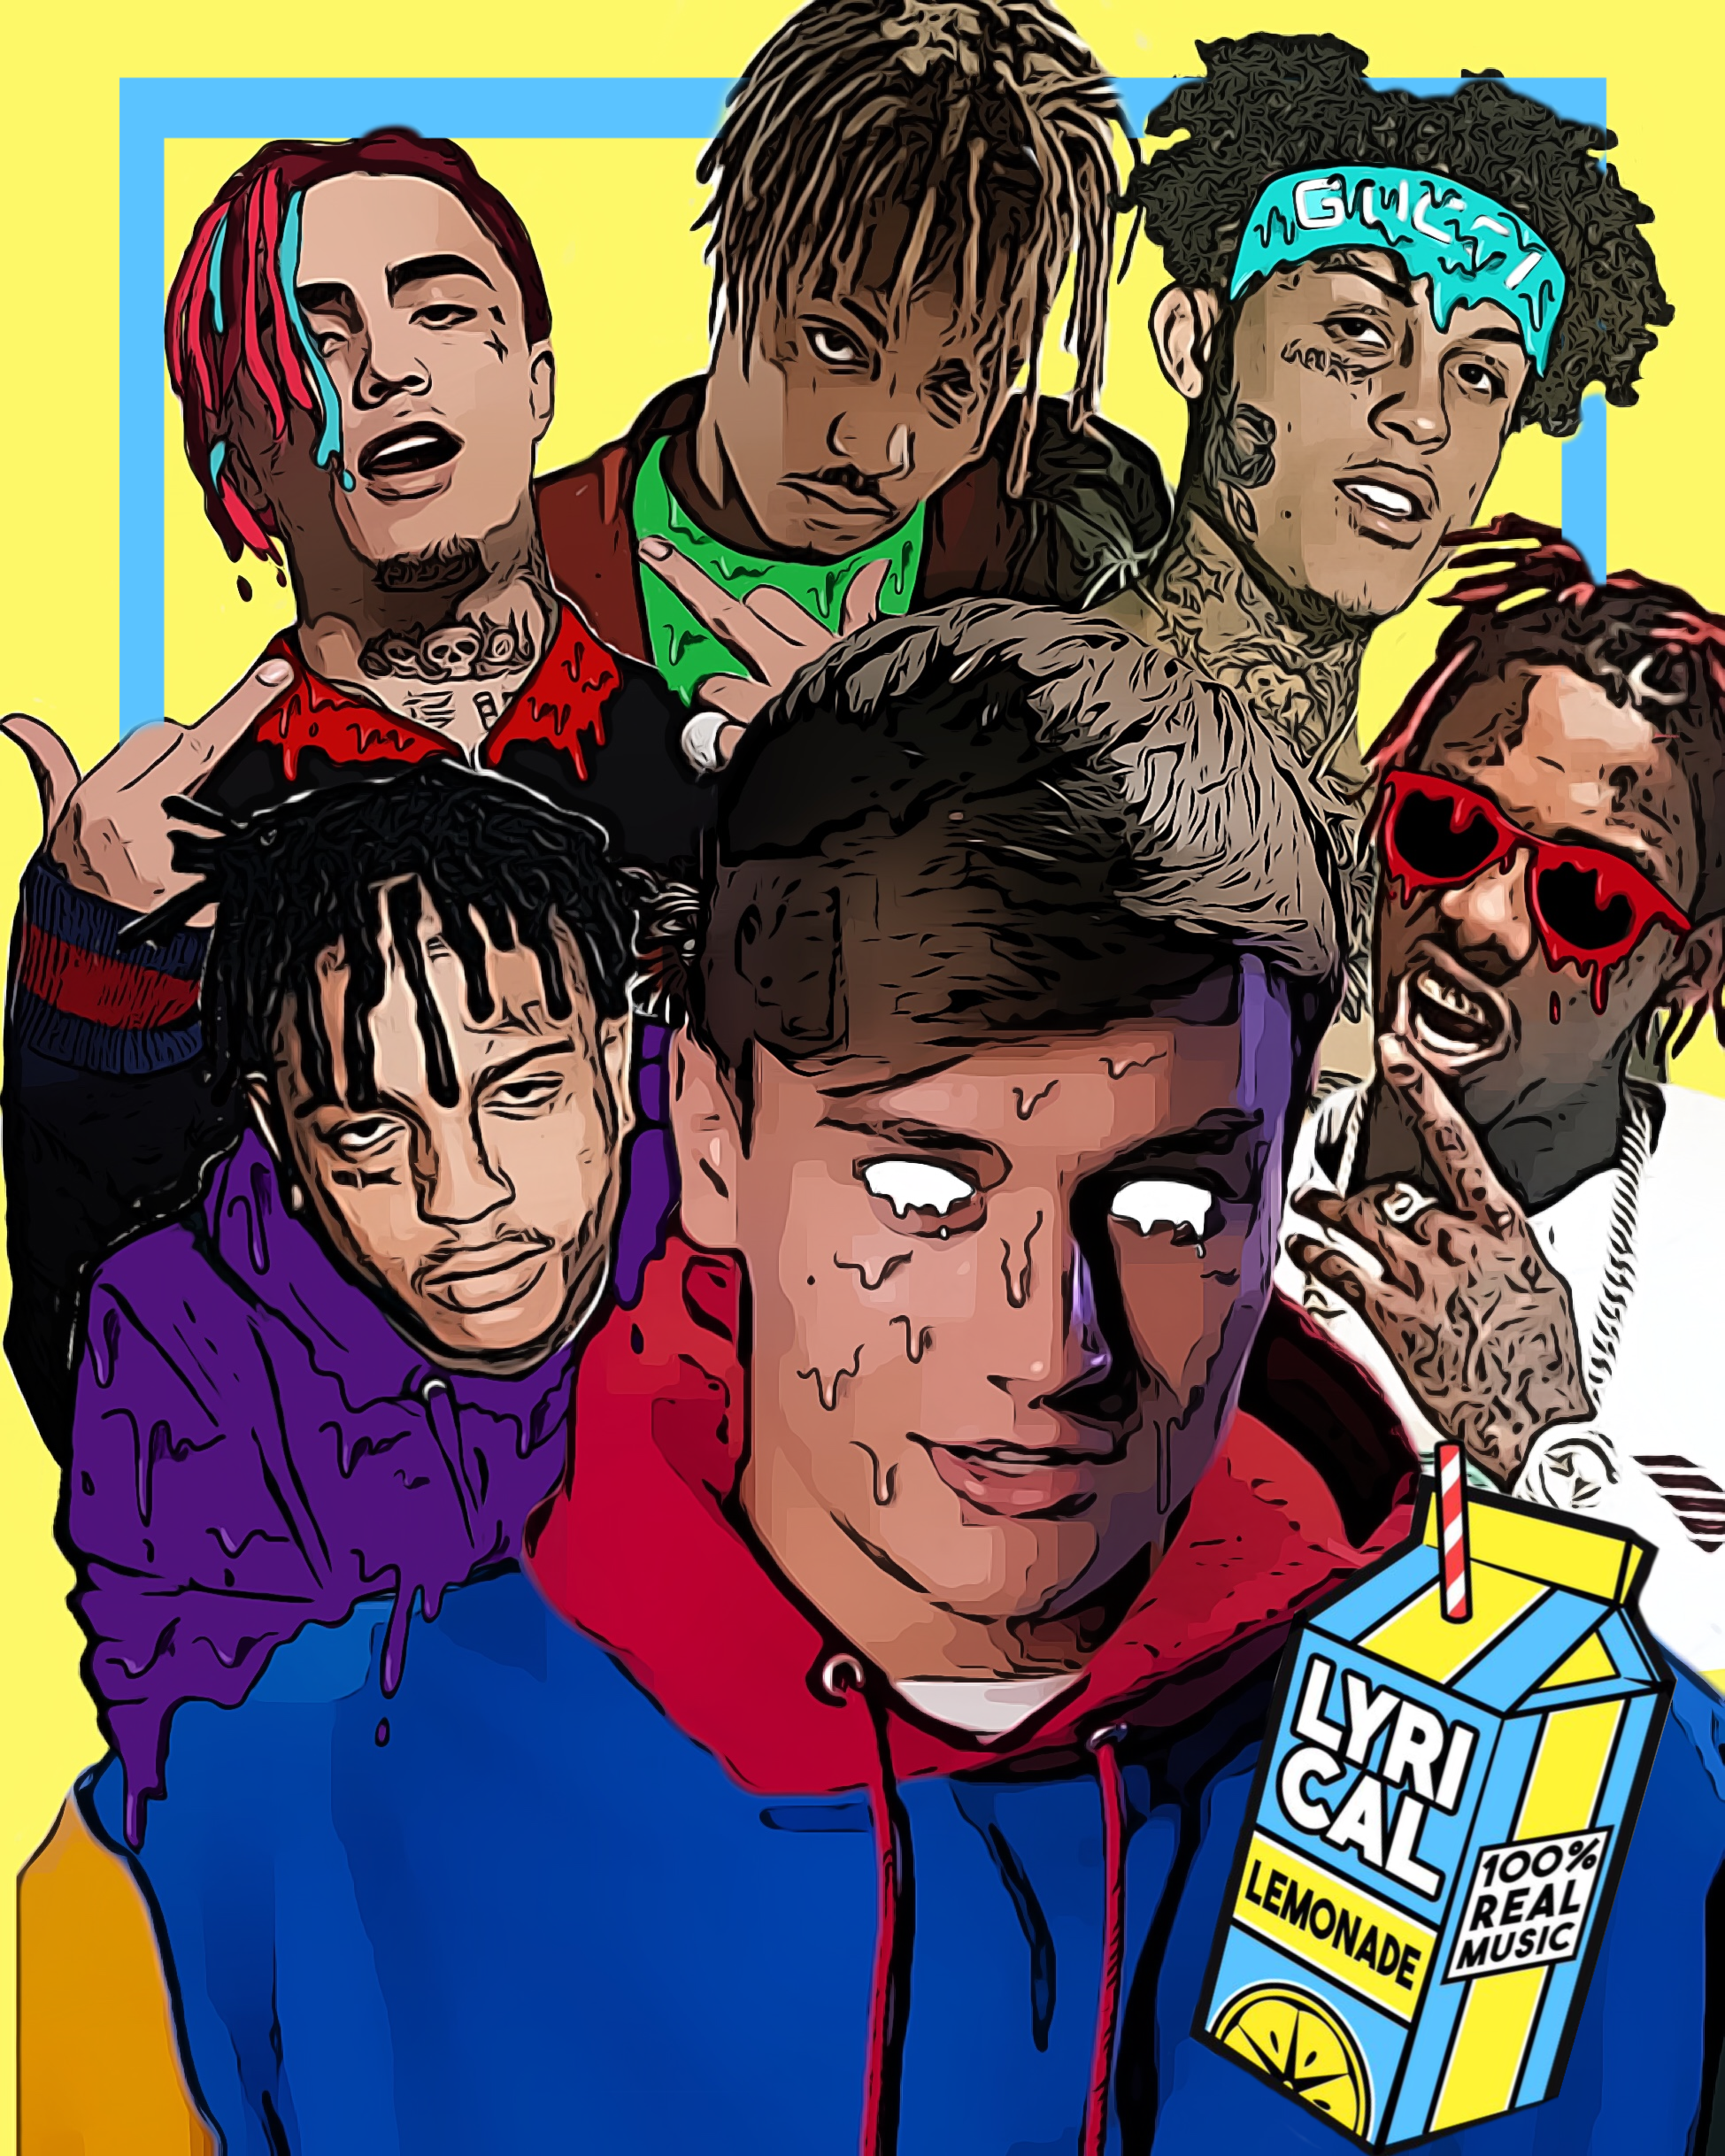 Cole Bennett surrounded by rappers he's worked with through his new company, Lyrical Lemonade. Illustration created by Abby Nopoulos.